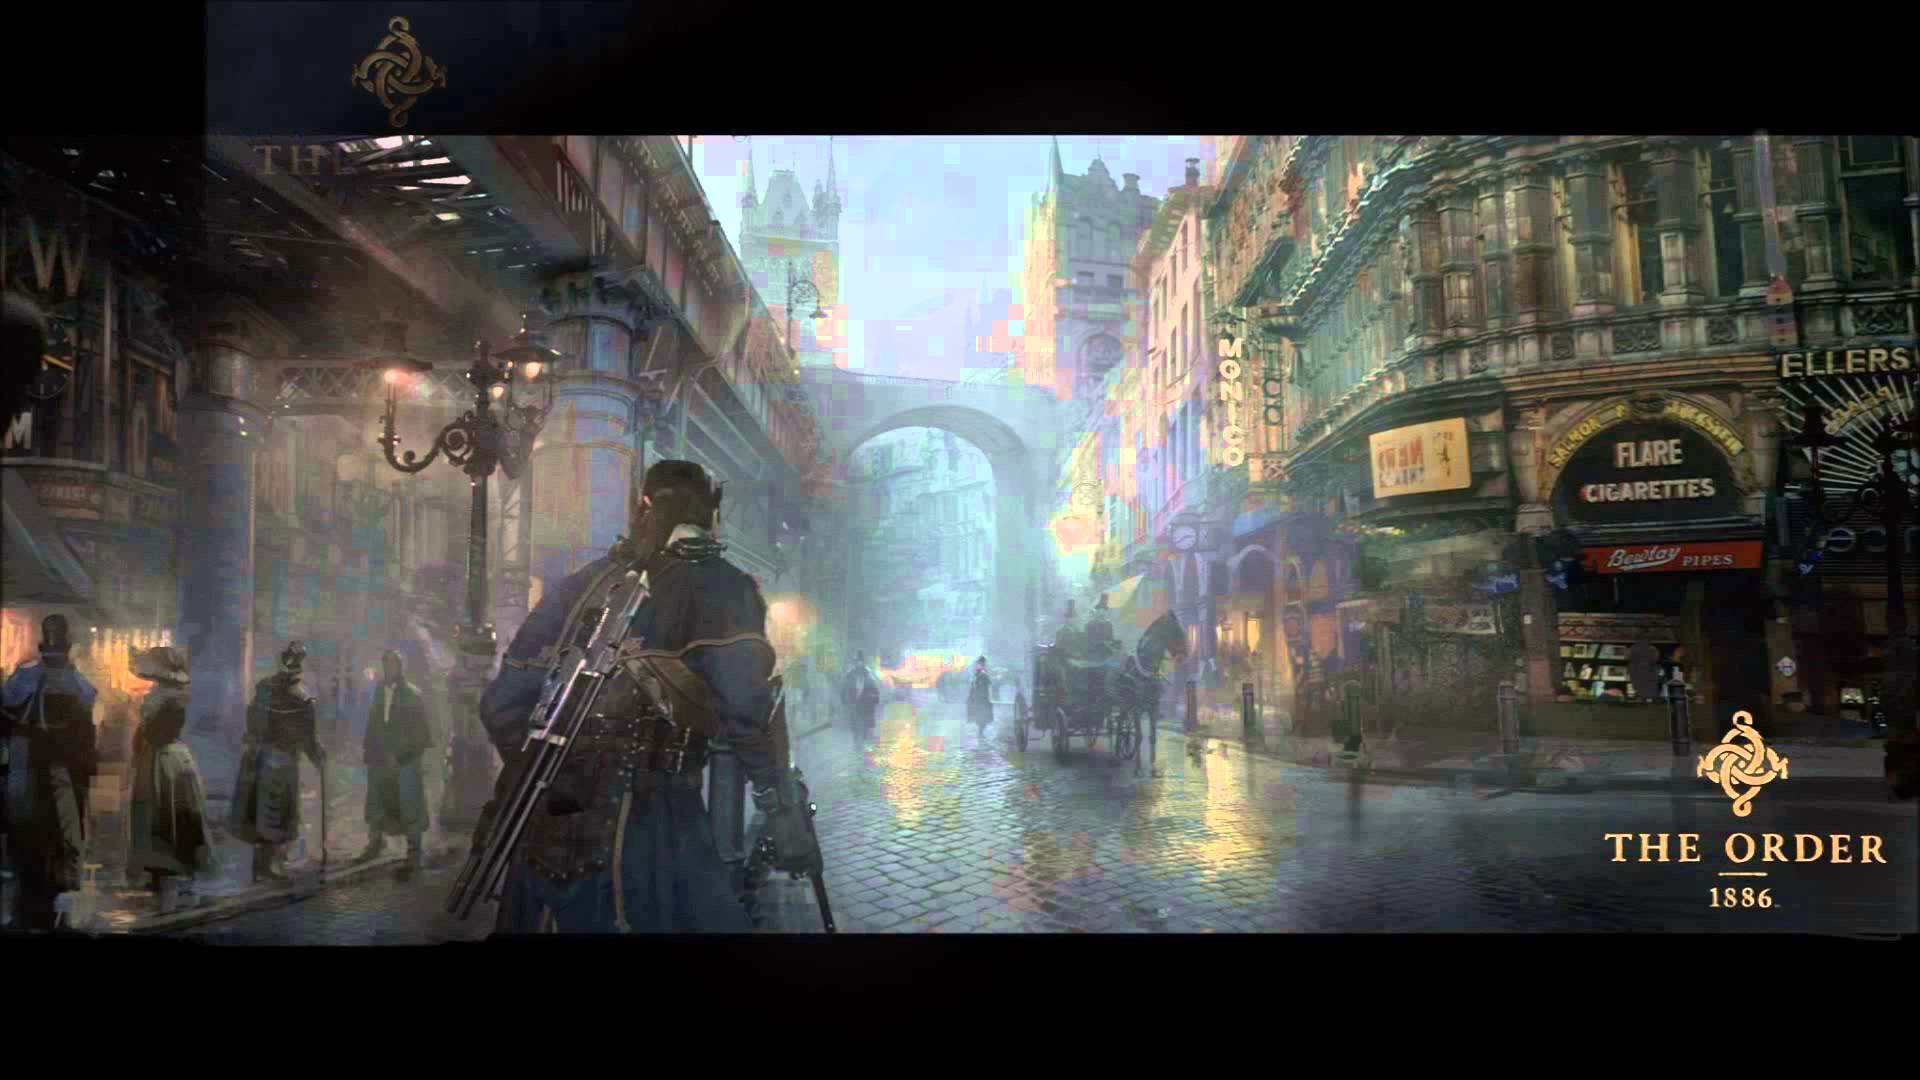 Download the order 1886 ps4 pc game torrent http://torrentsgames.